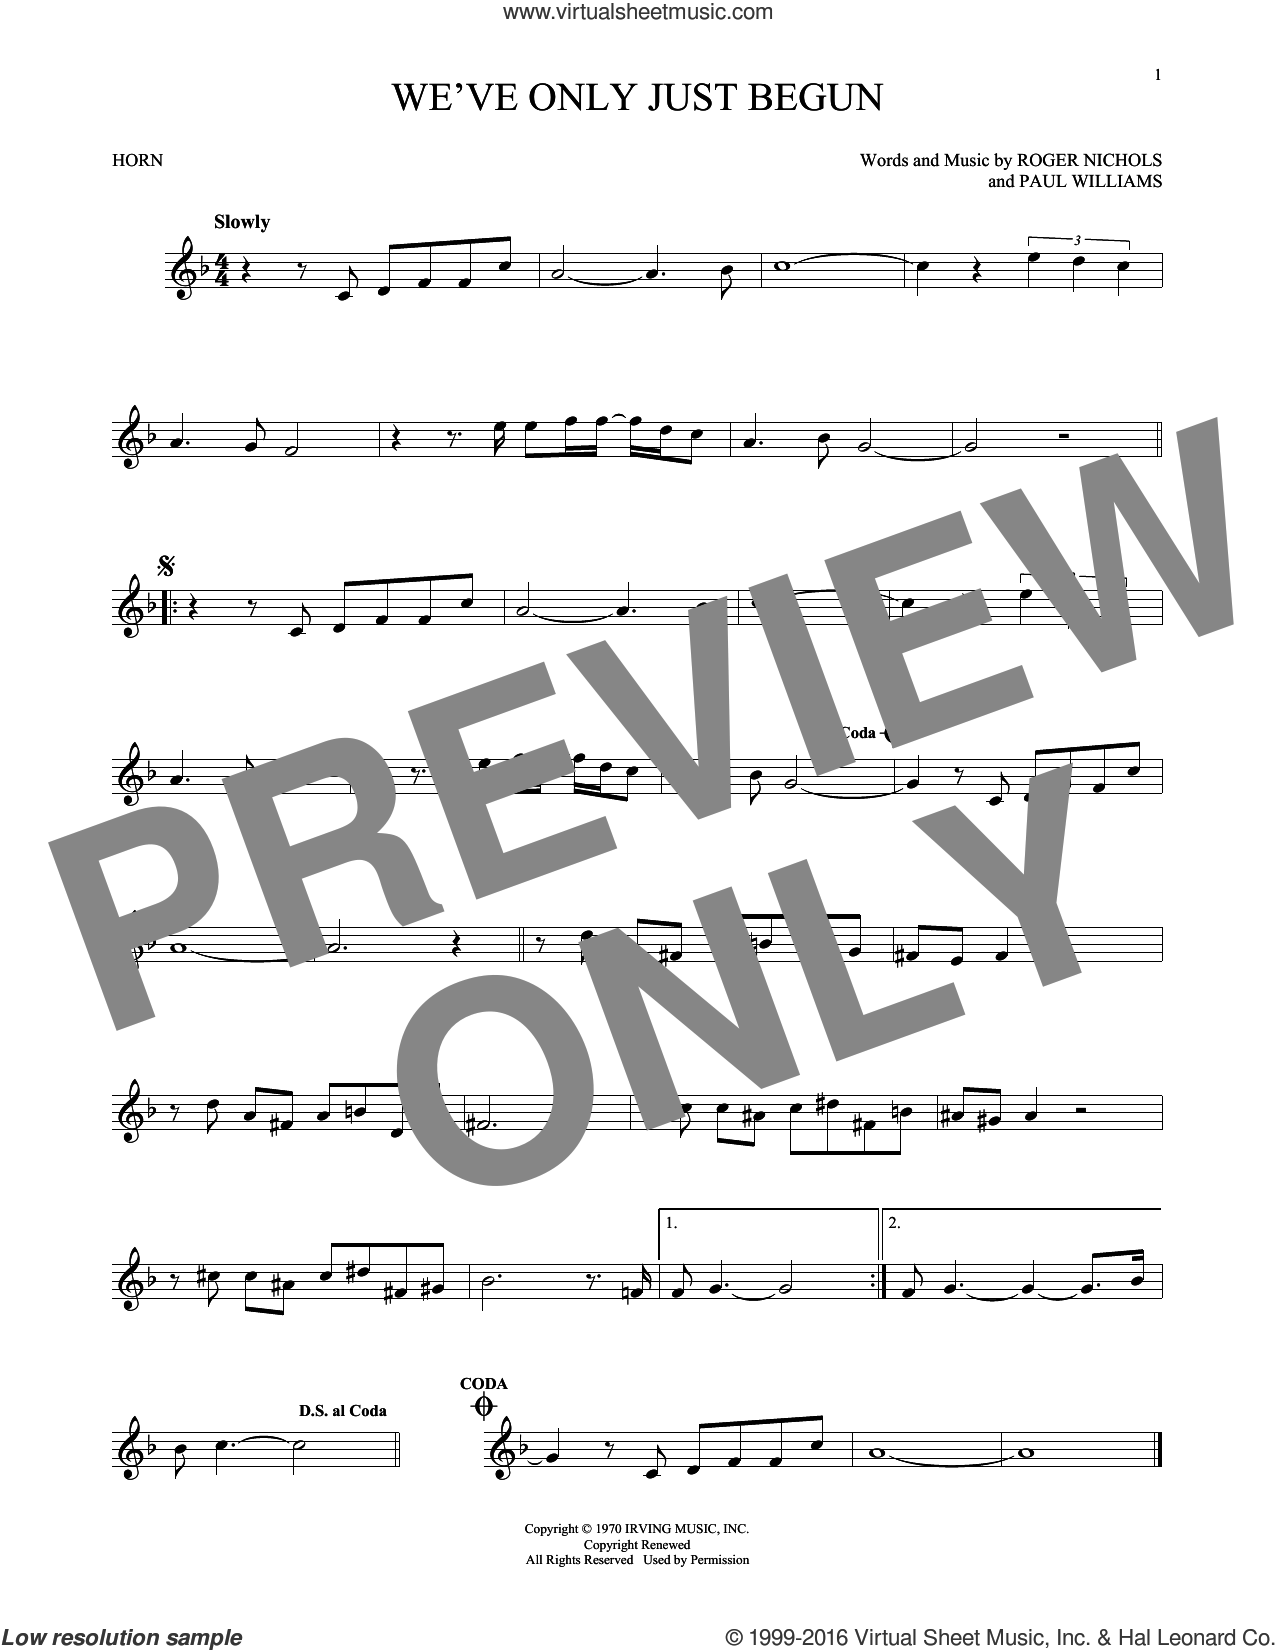 We've Only Just Begun sheet music for horn solo by Roger Nichols